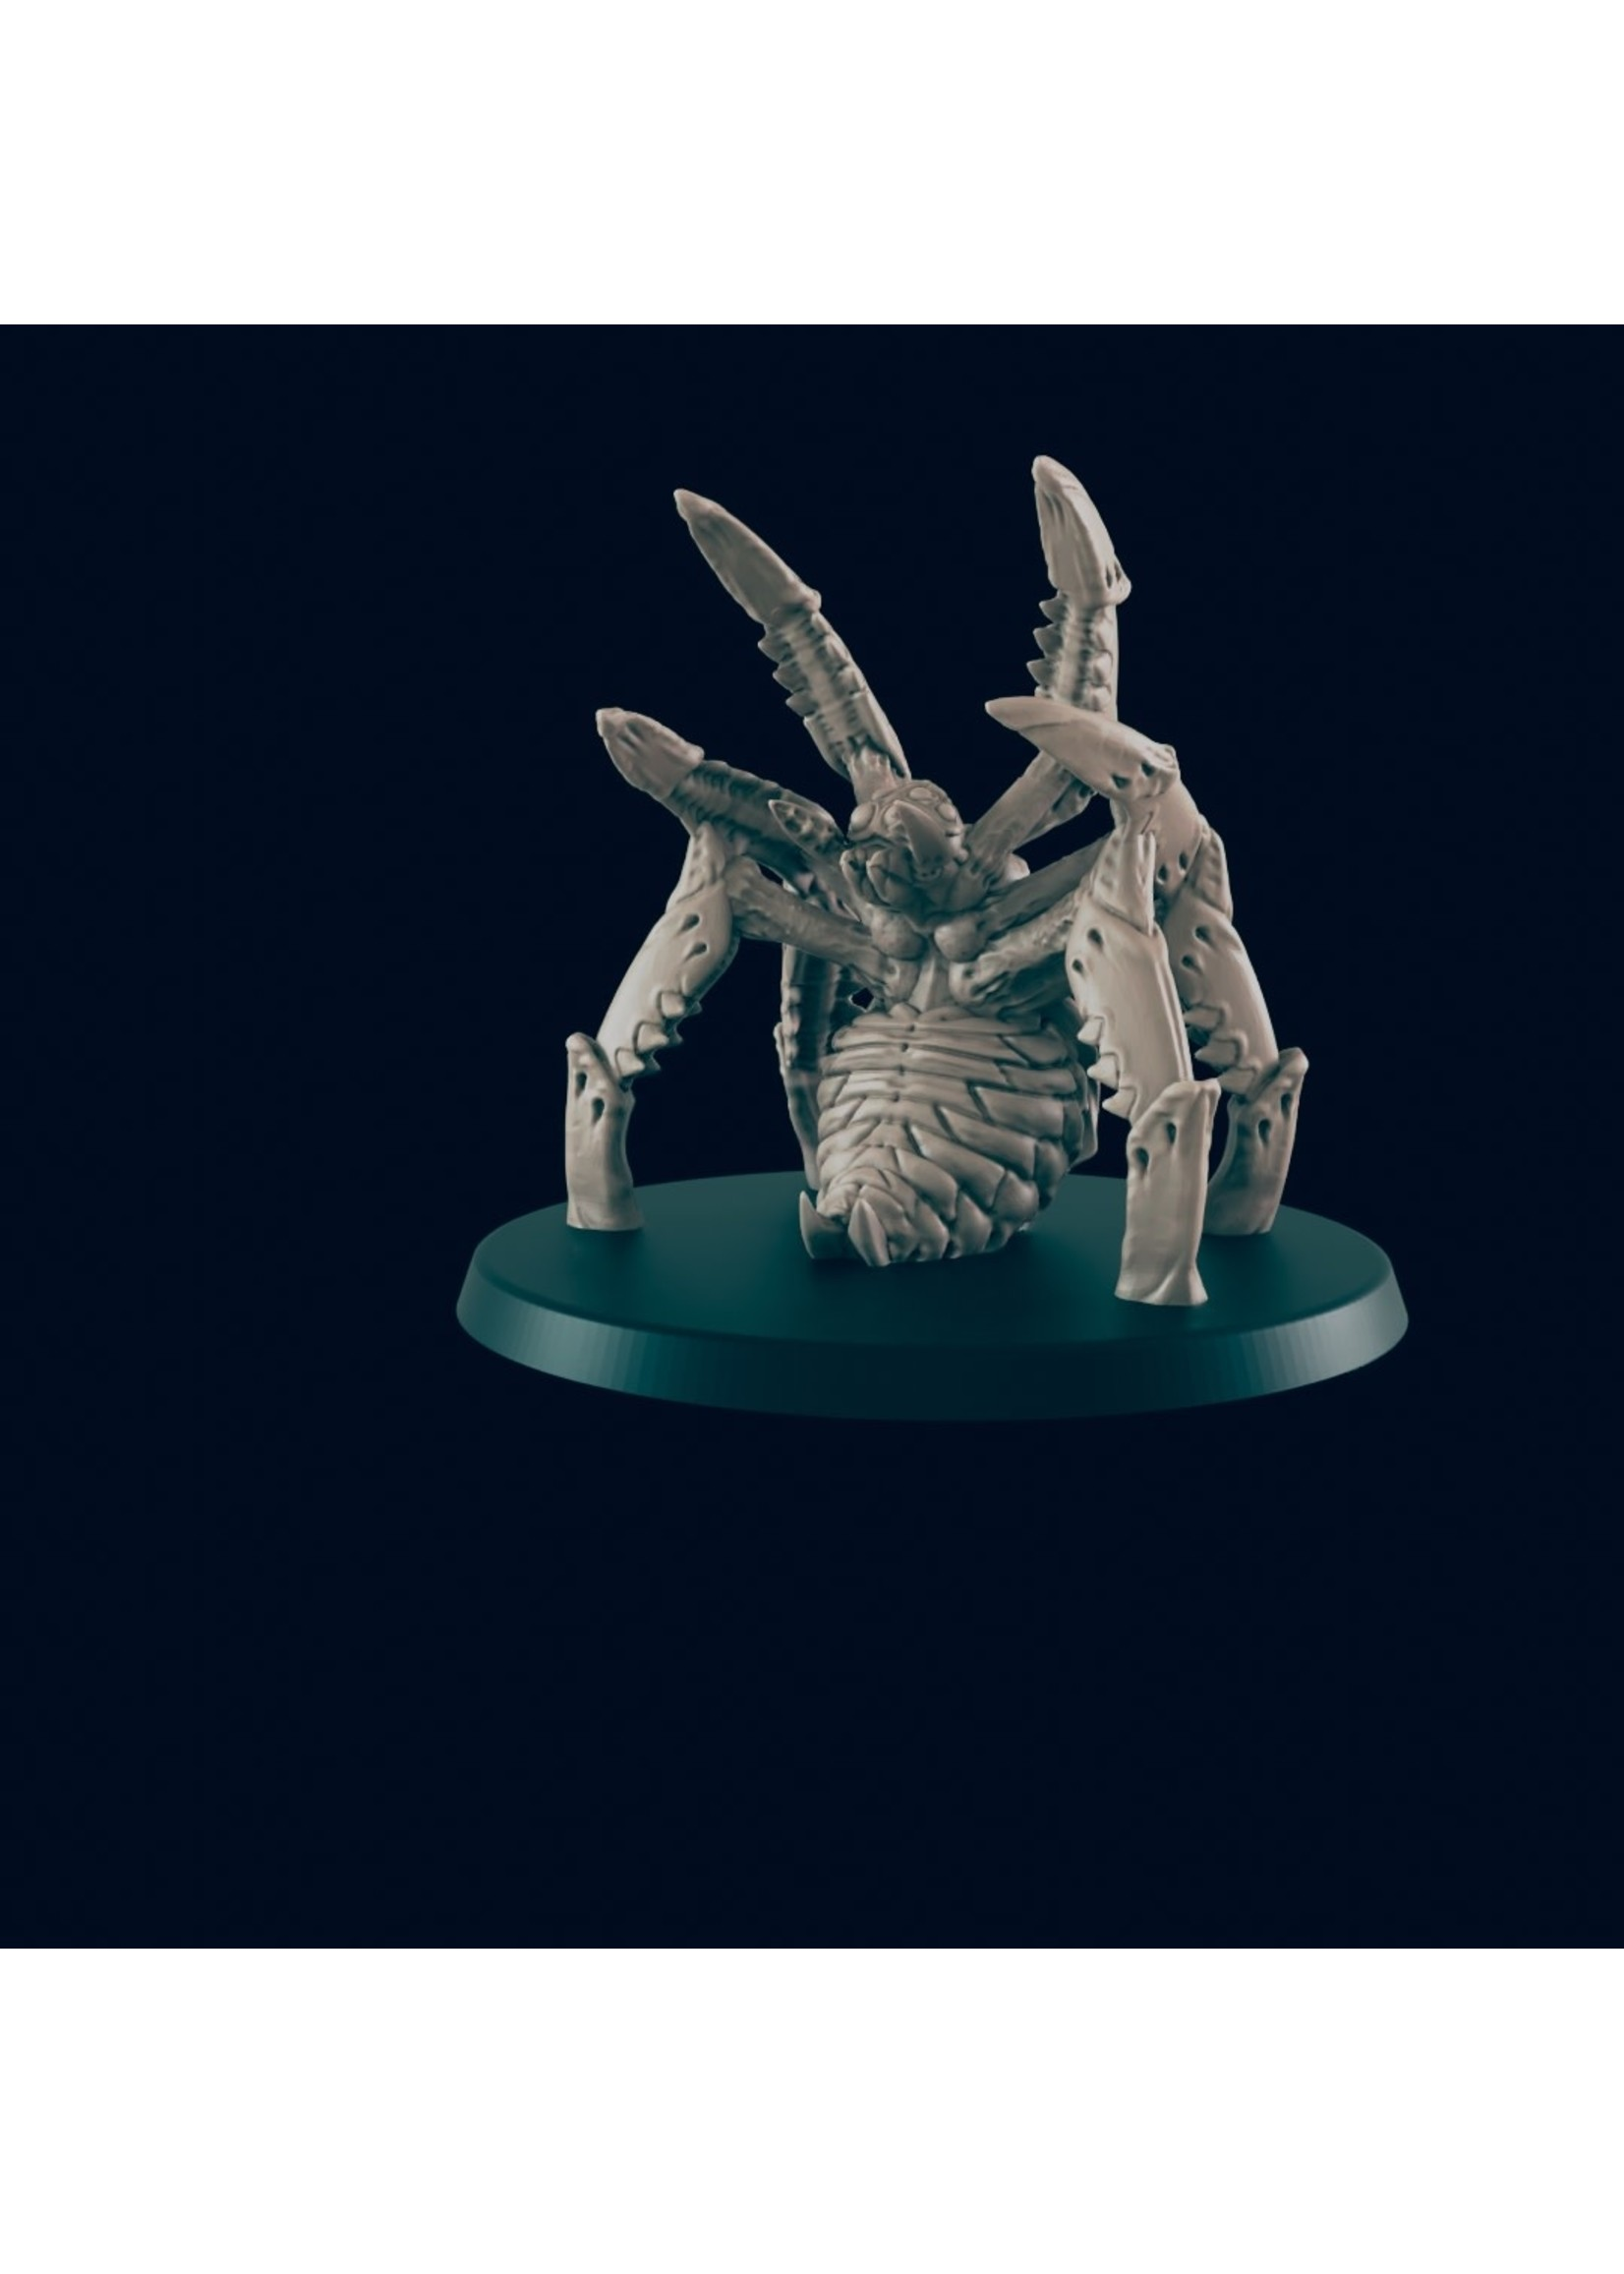 3D Printed Miniature - Giant Spider - Dungeons & Dragons - Beasts and Baddies KS